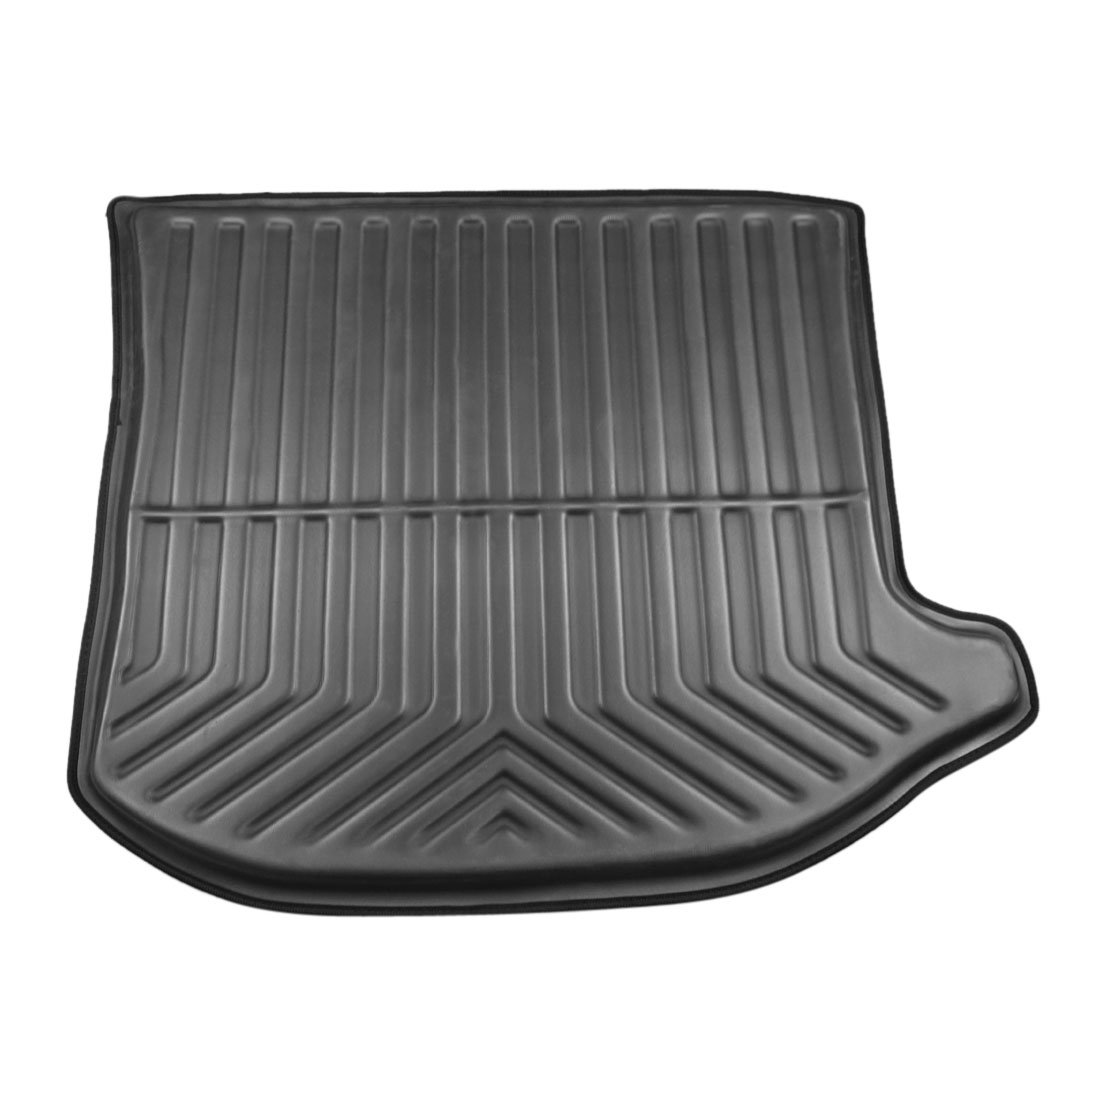 X AUTOHAUX Black Rear Trunk Boot Liner Cargo Mat Floor Tray for Jeep Grand Cherokee 13-17